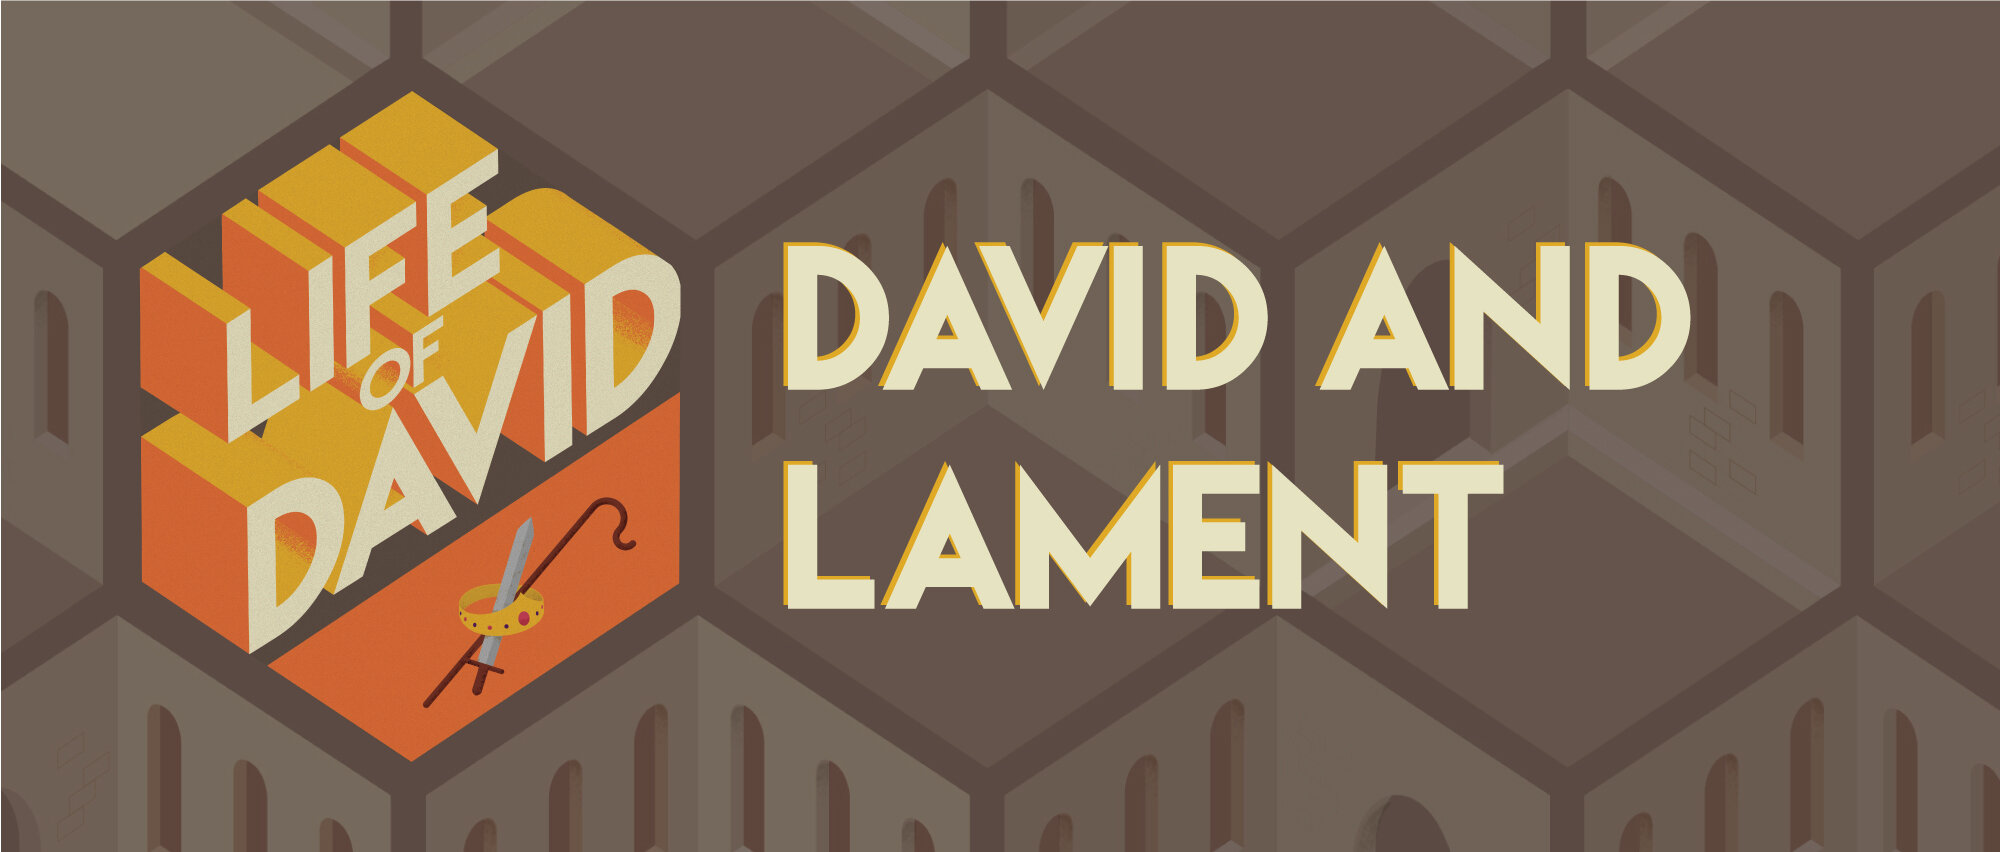 David-and-Lament.jpg